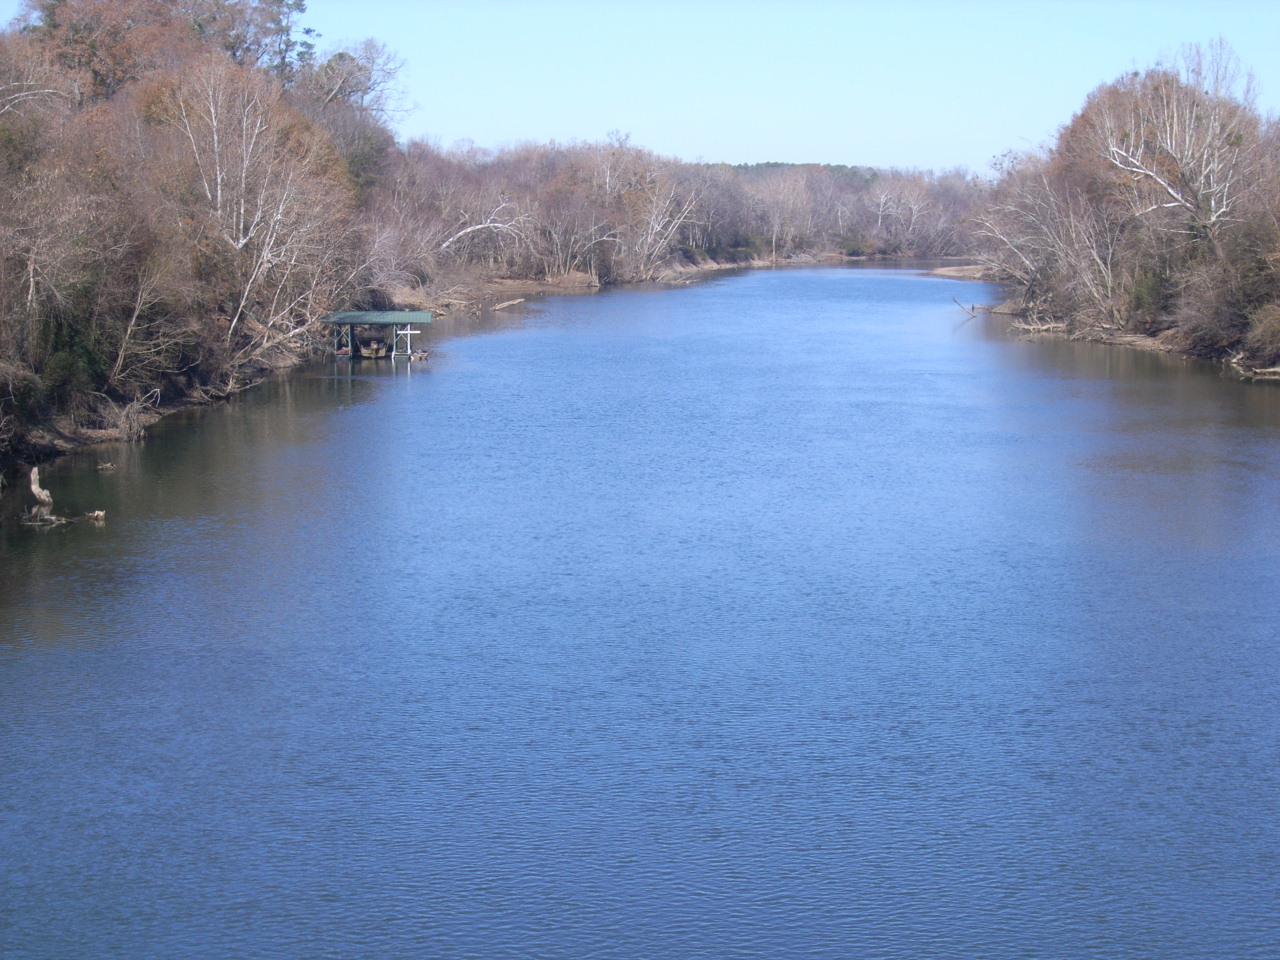 (2) Ouachita River looking downstream from bridge